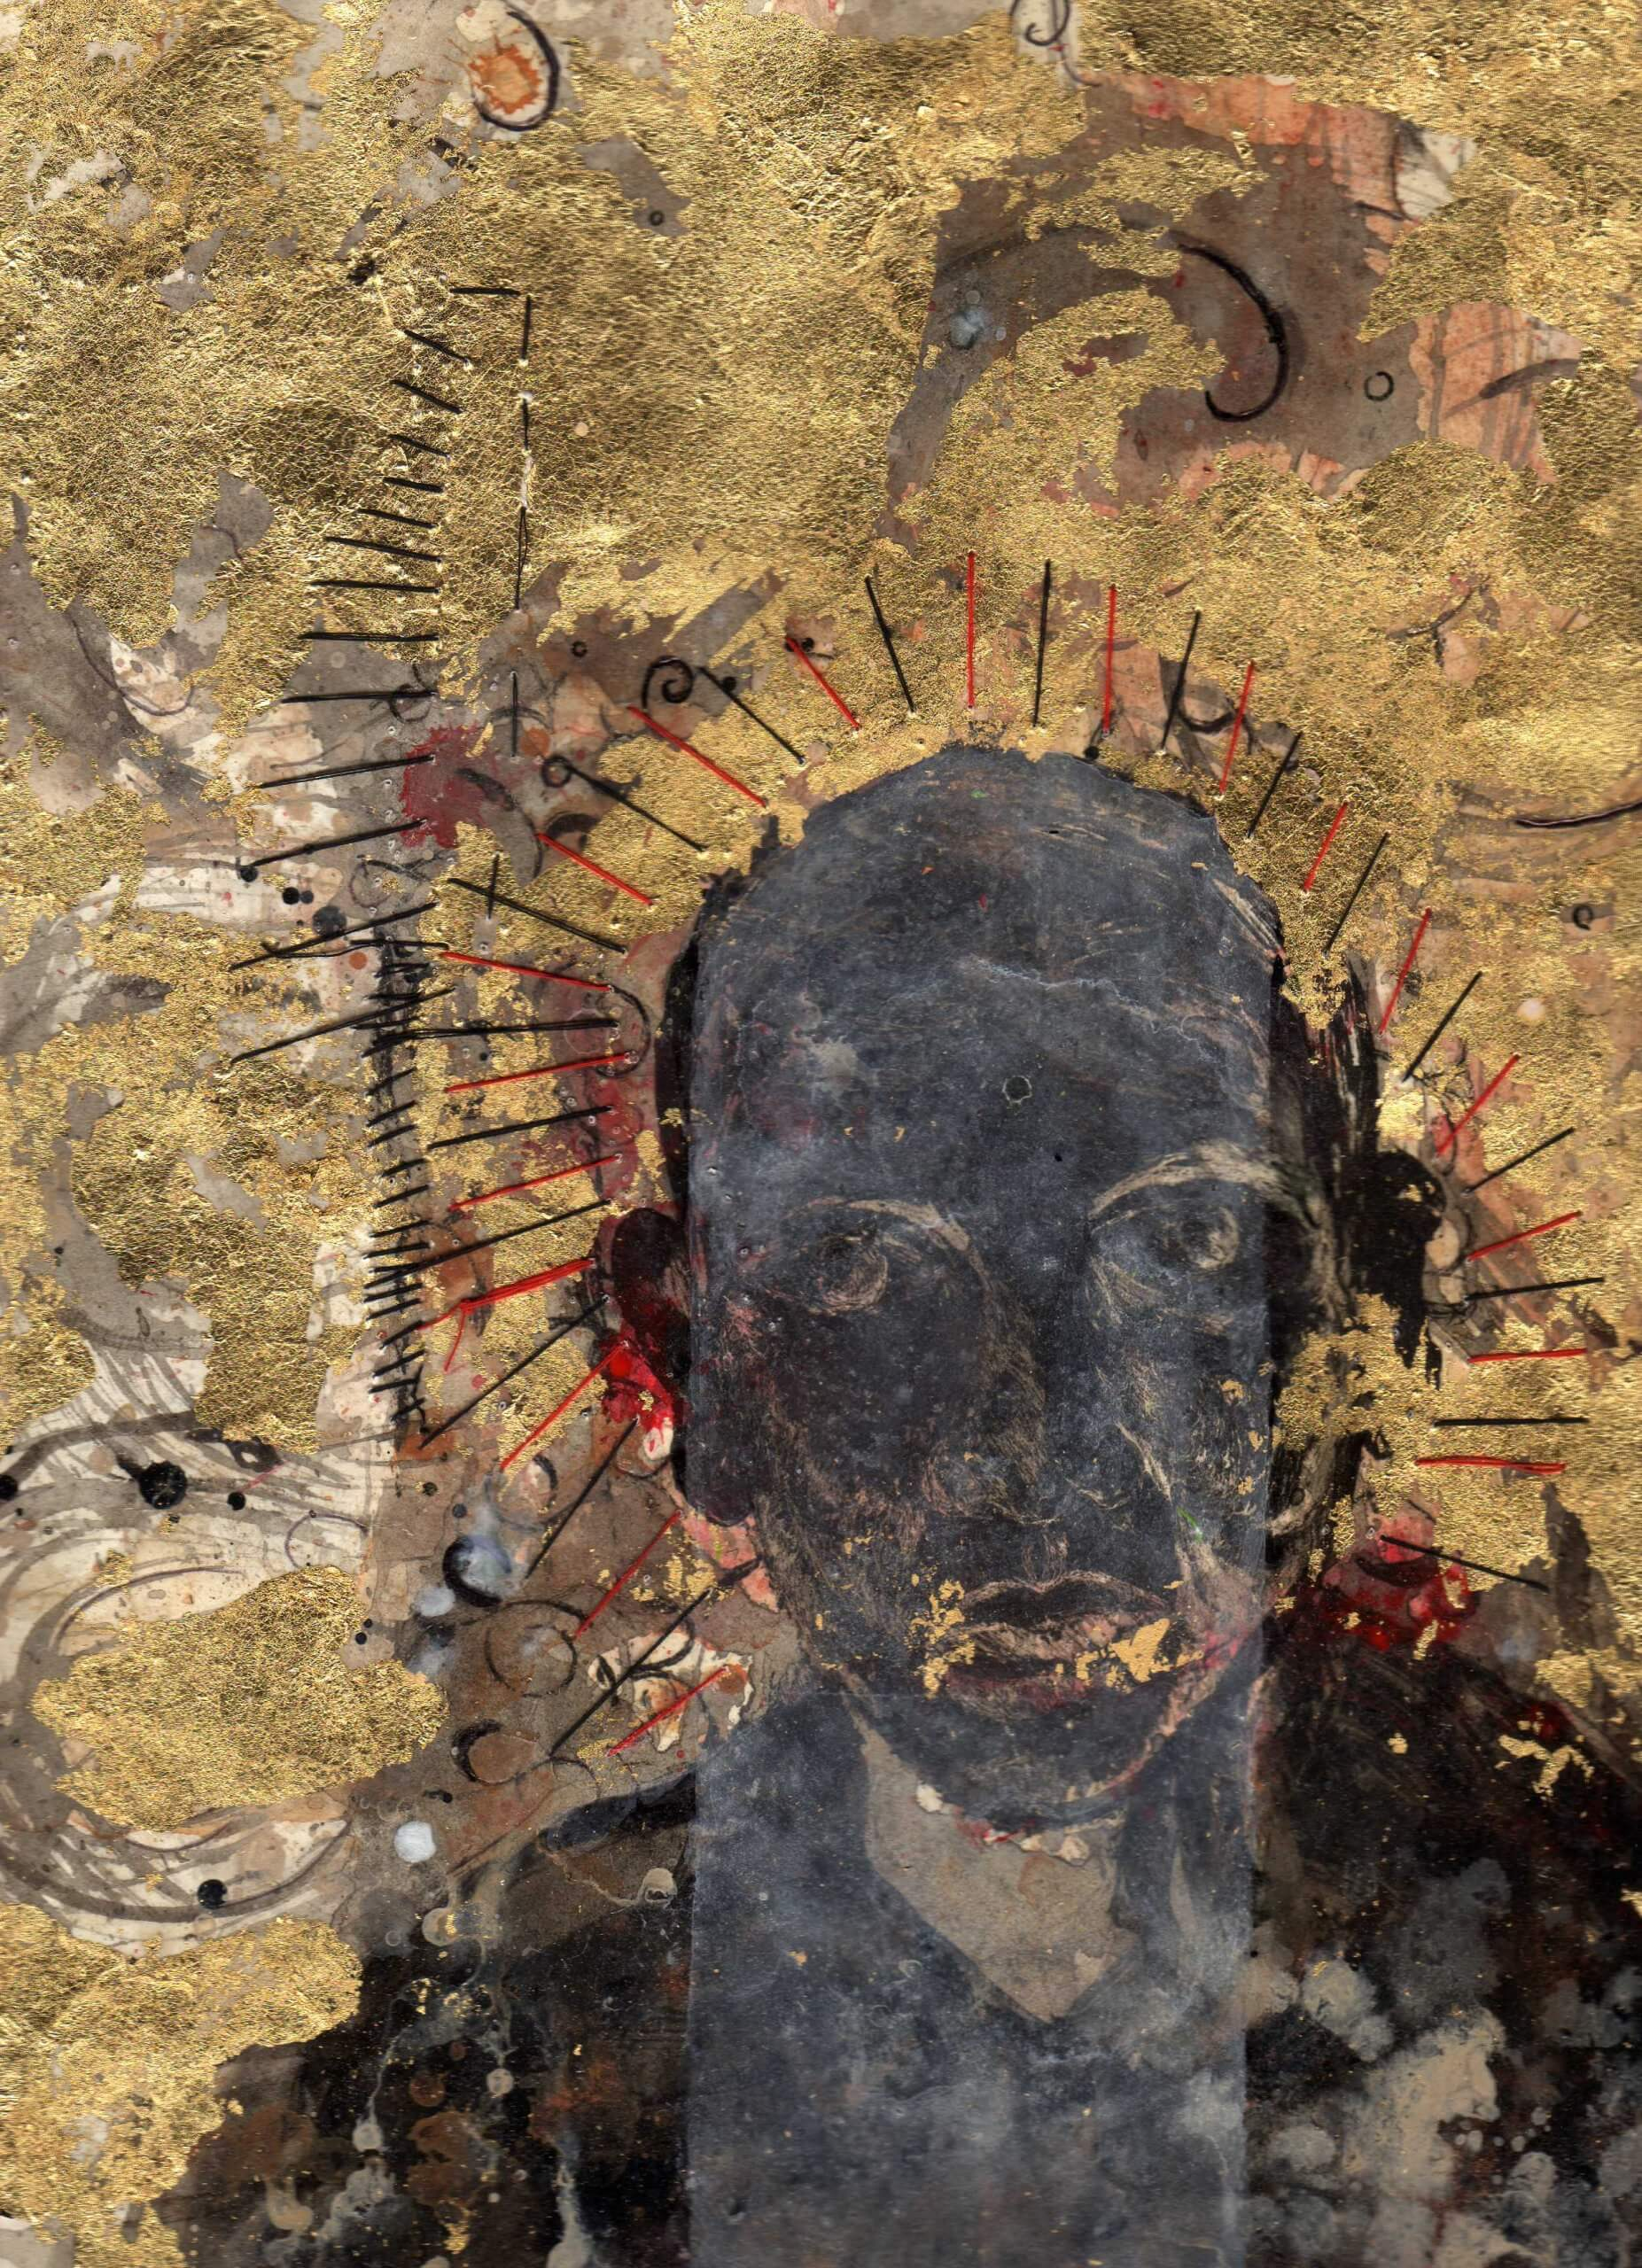 A mixed media painting of a Black man's head on a metallic gold highly texture background. The man seems to have a halo of red and black lines and his mouth is also gold.